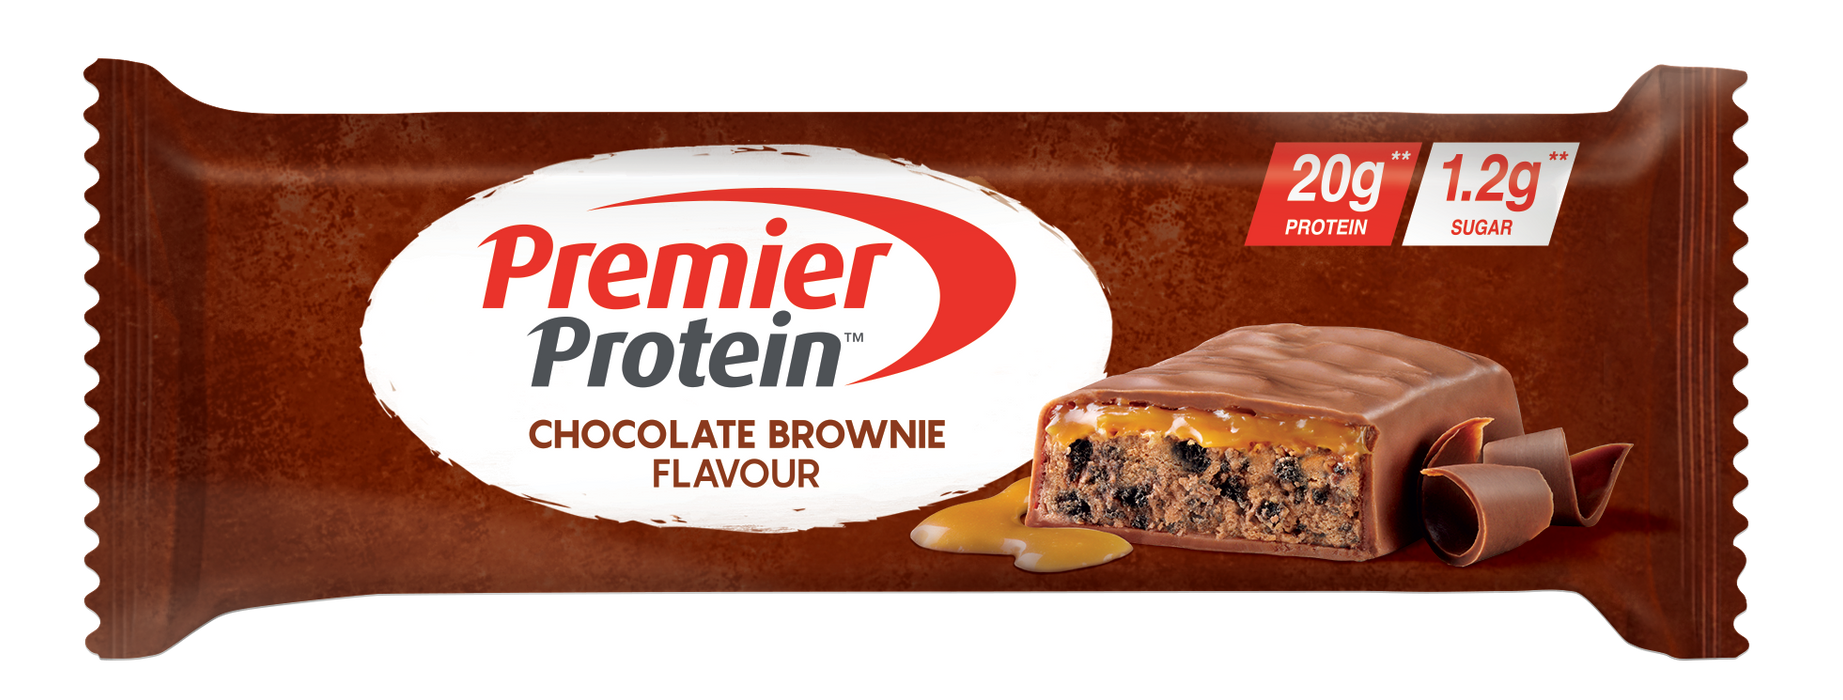 Premier Protein Chocolate Brownie flavour Protein bar 50g (Best Before Date: 28/02/2021)